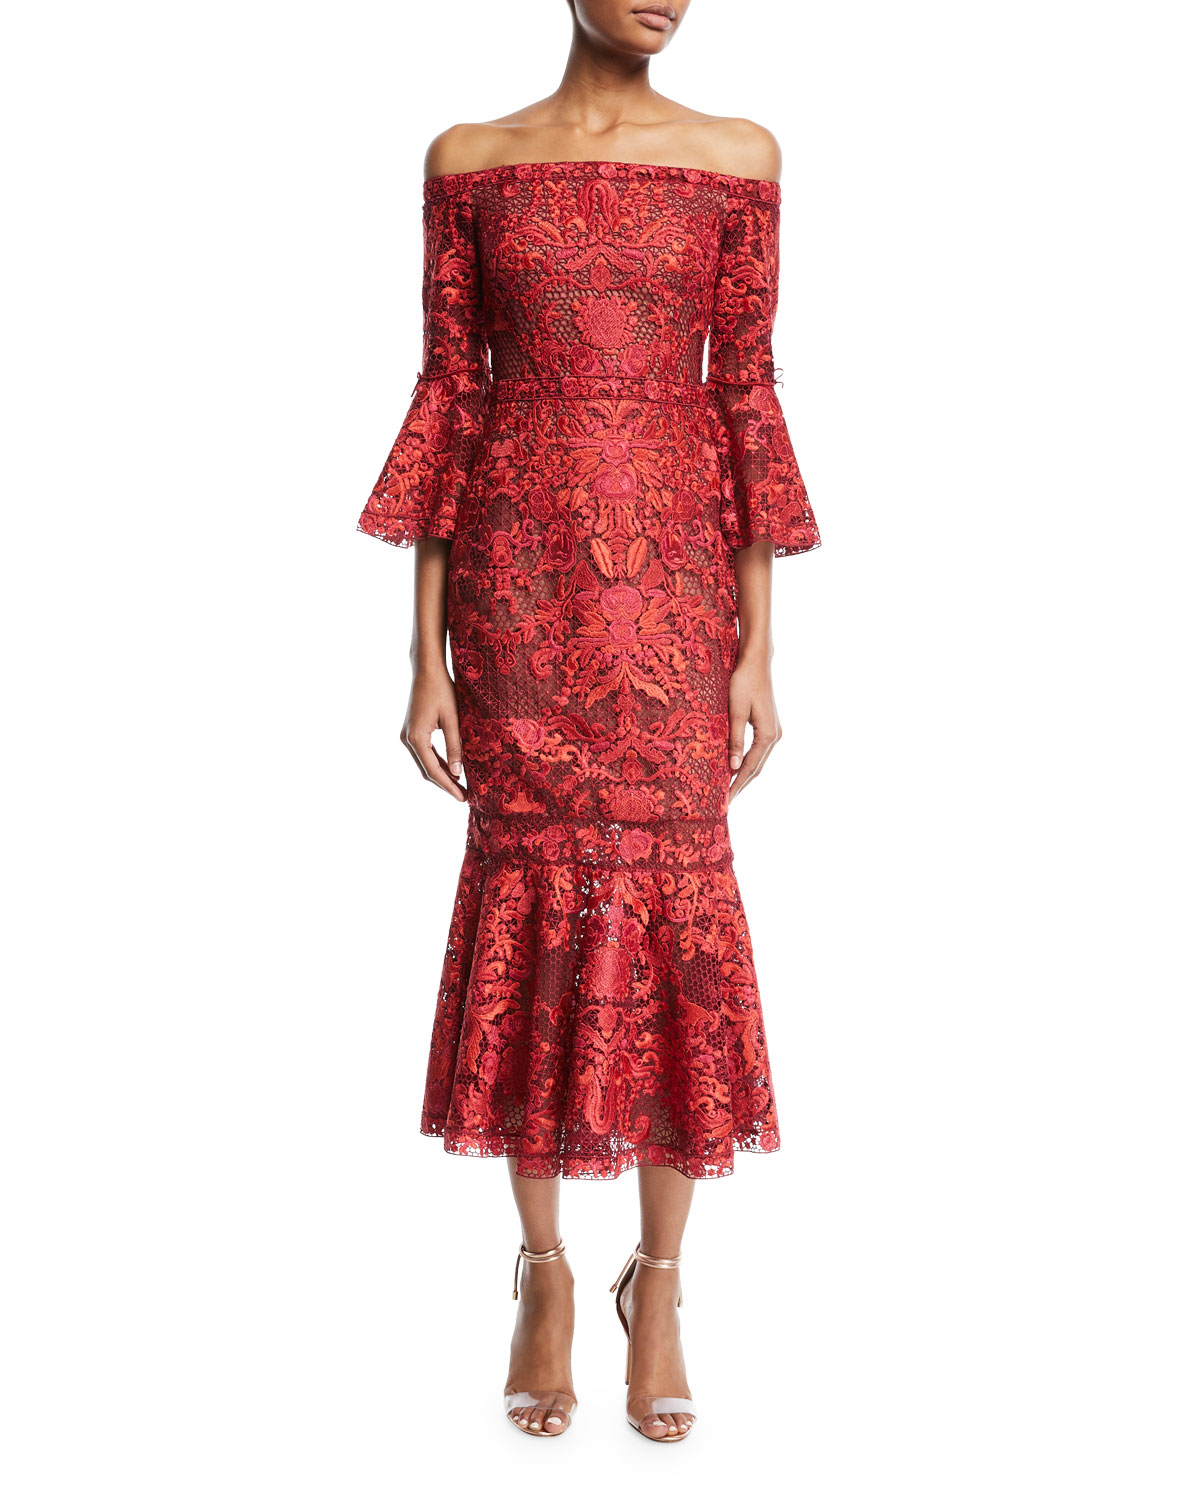 bbfb64c002c Marchesa Notte Off-Shoulder Lace Bell-Sleeve Midi Cocktail Dress ...